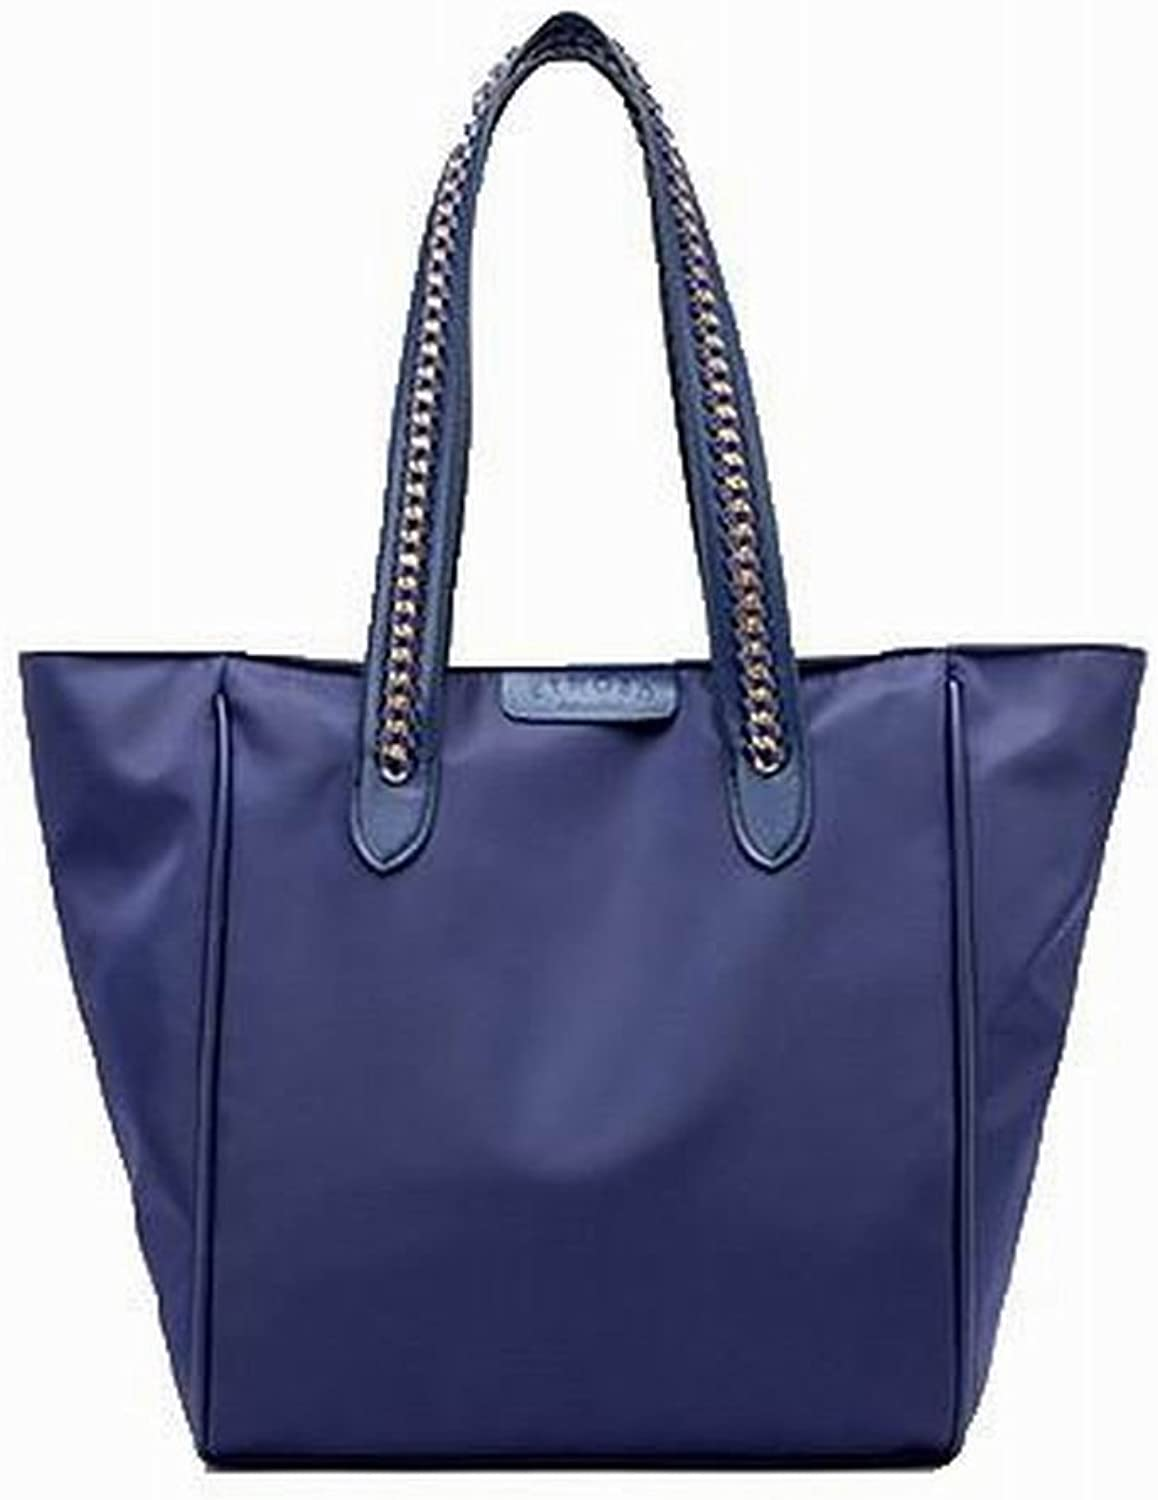 WeenFashion Women's Fashion Shoulder Bags Casual Zippers Tote Bags,AMGBX180336